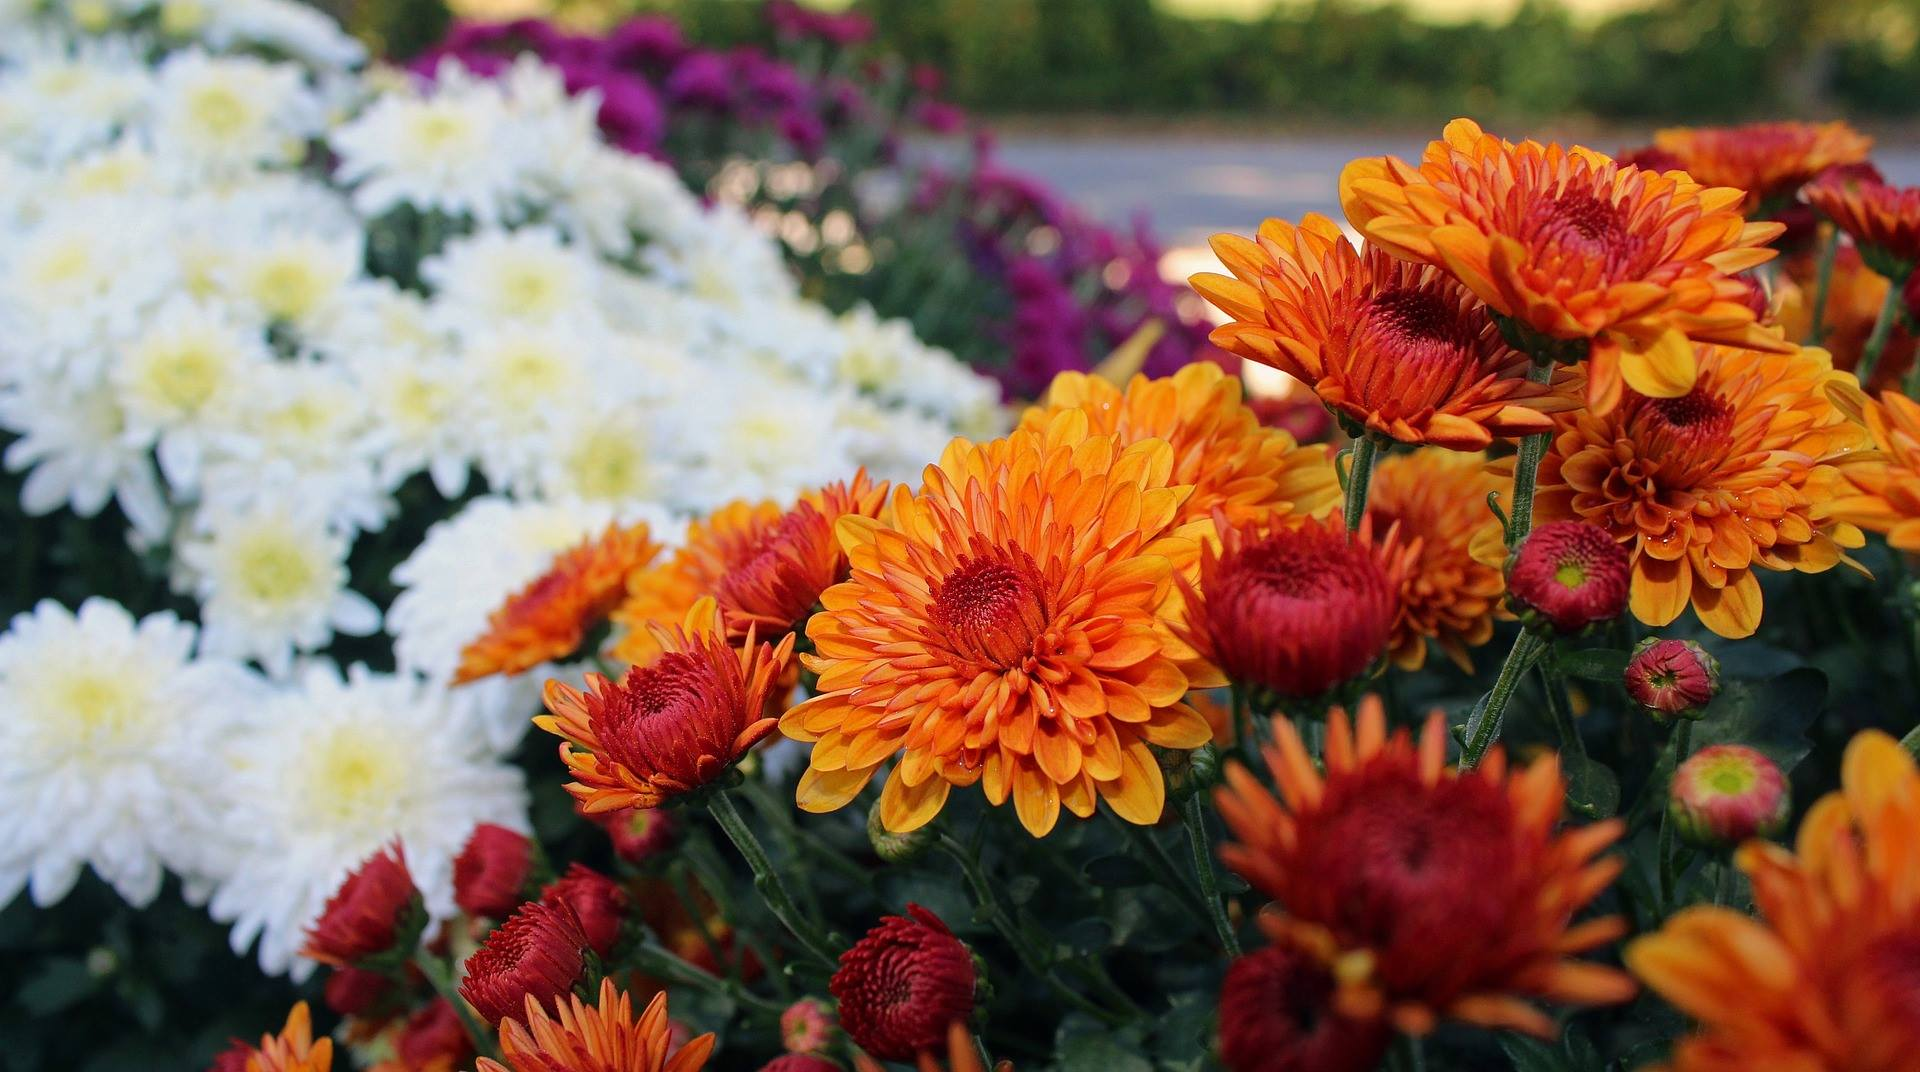 Landscaping design improved with colorful flowers in Sugar Grove, IL